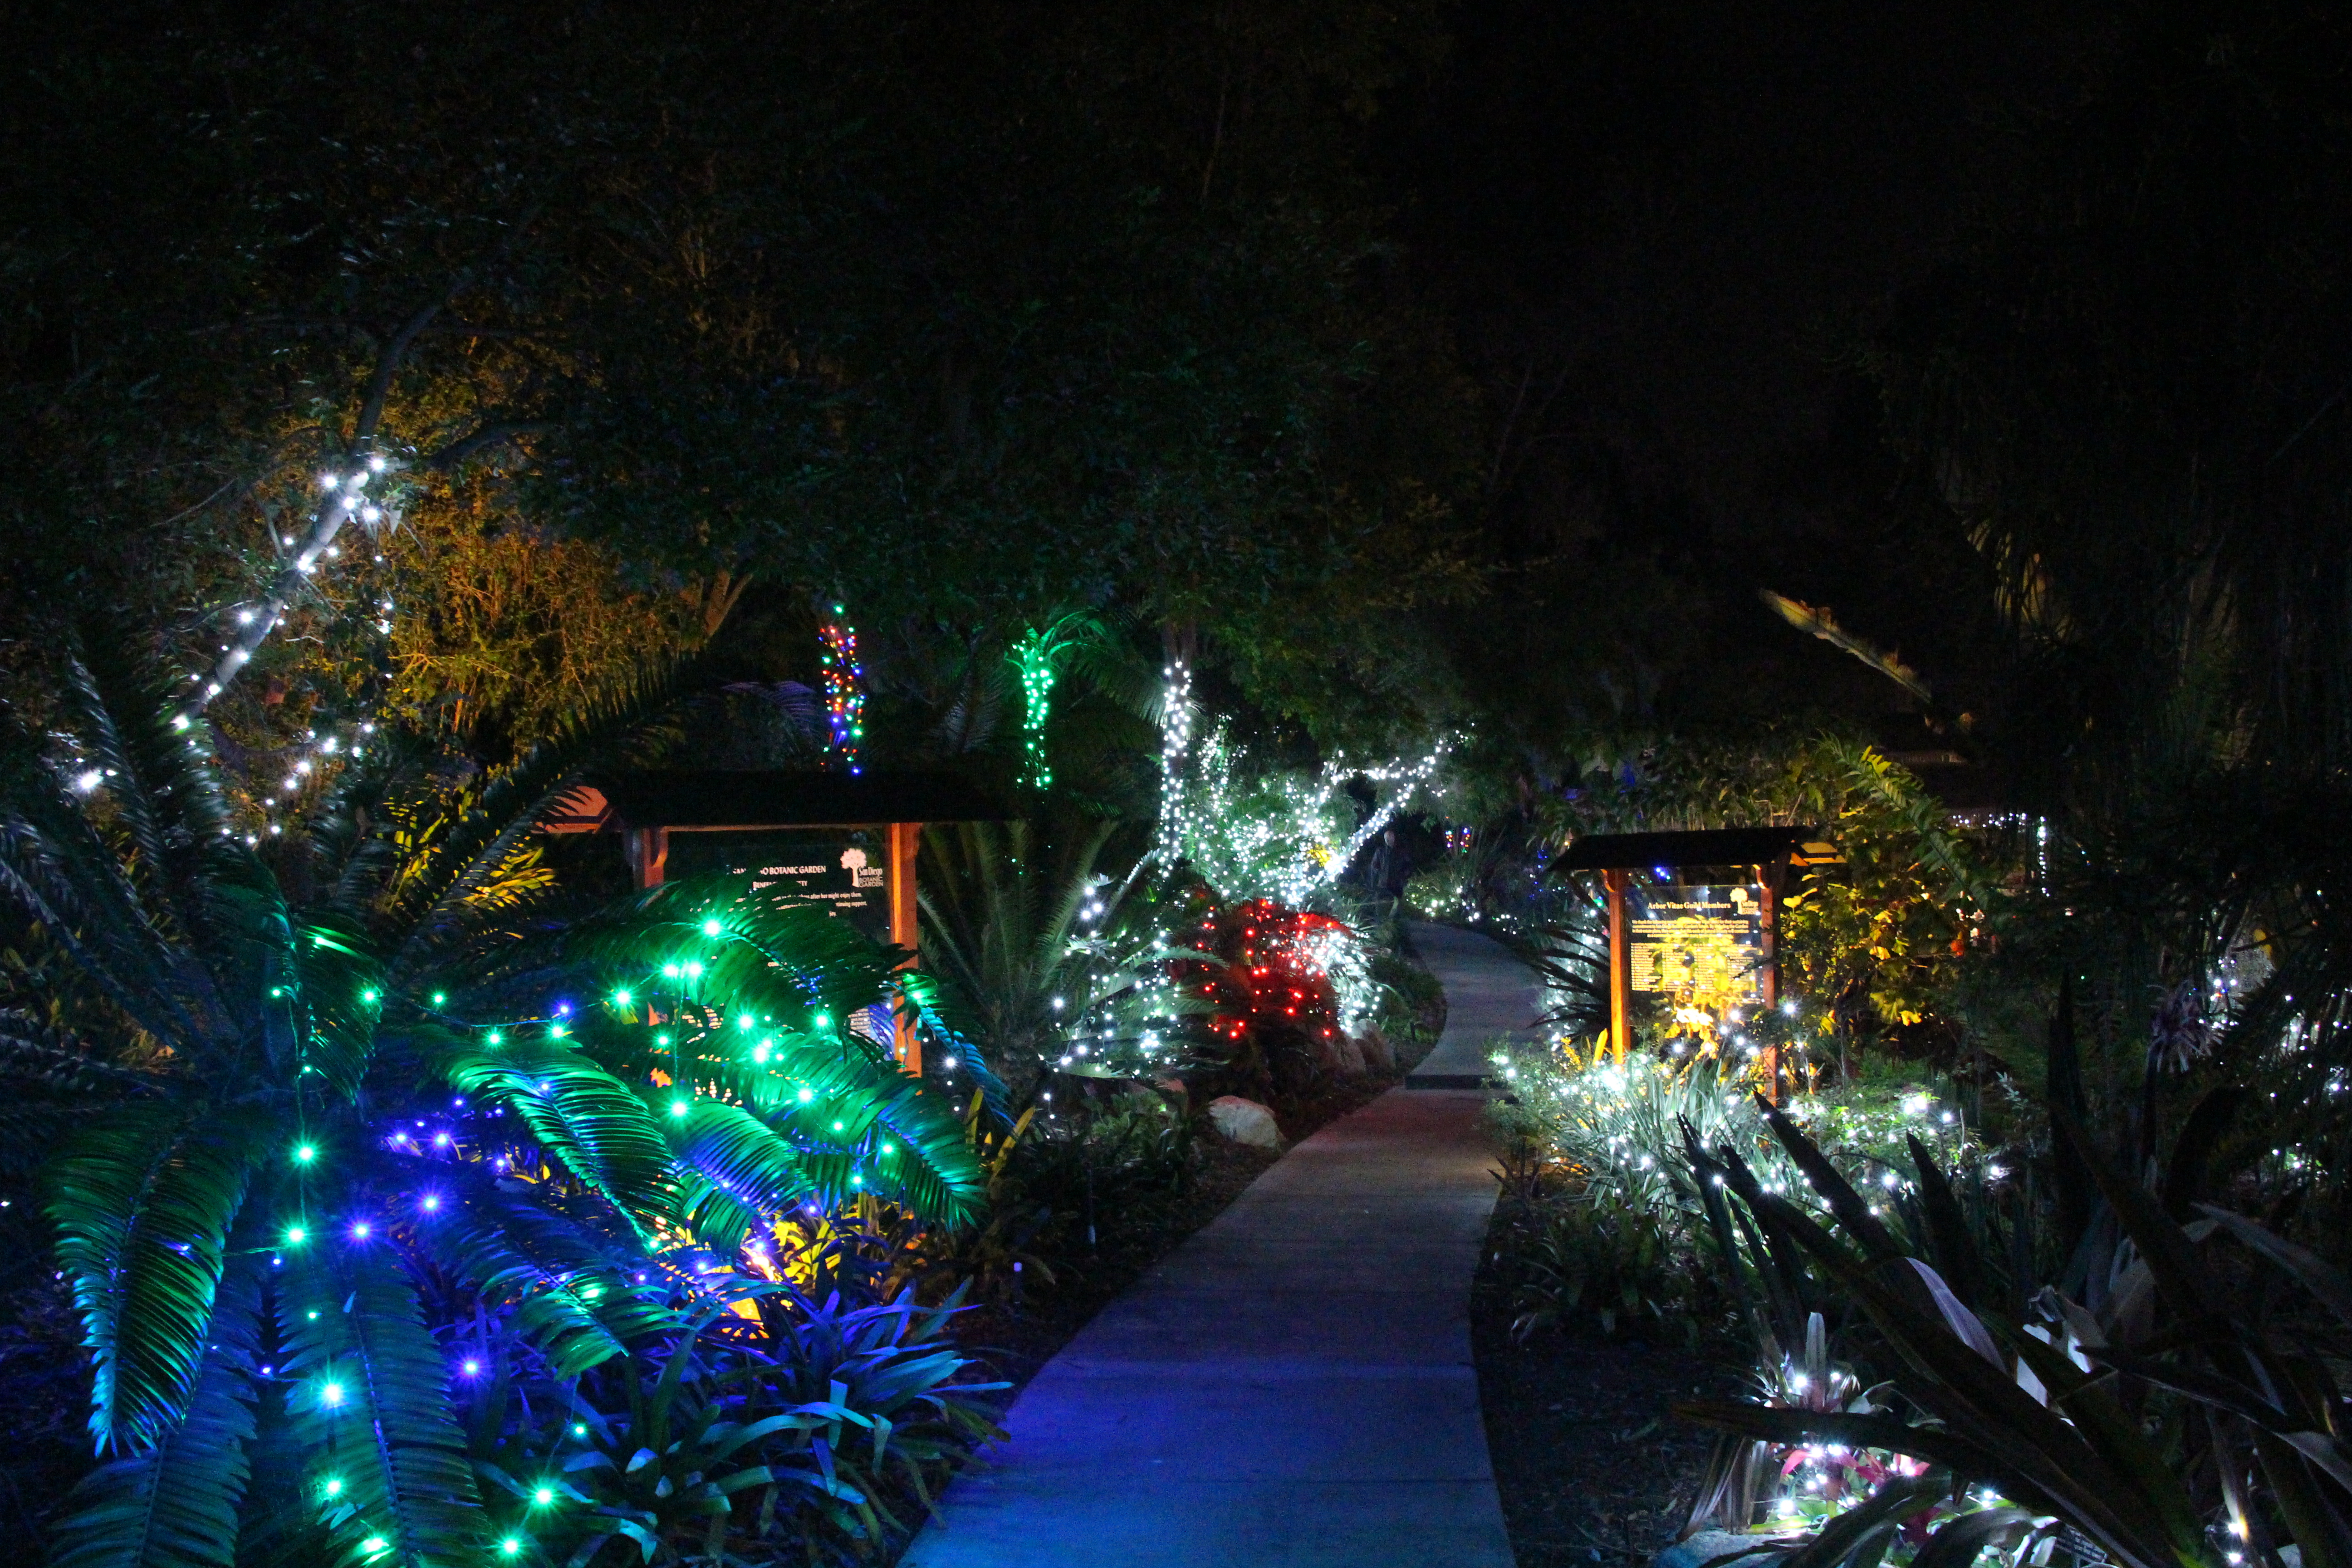 San Diego Botanic Gardens' Garden of Lights